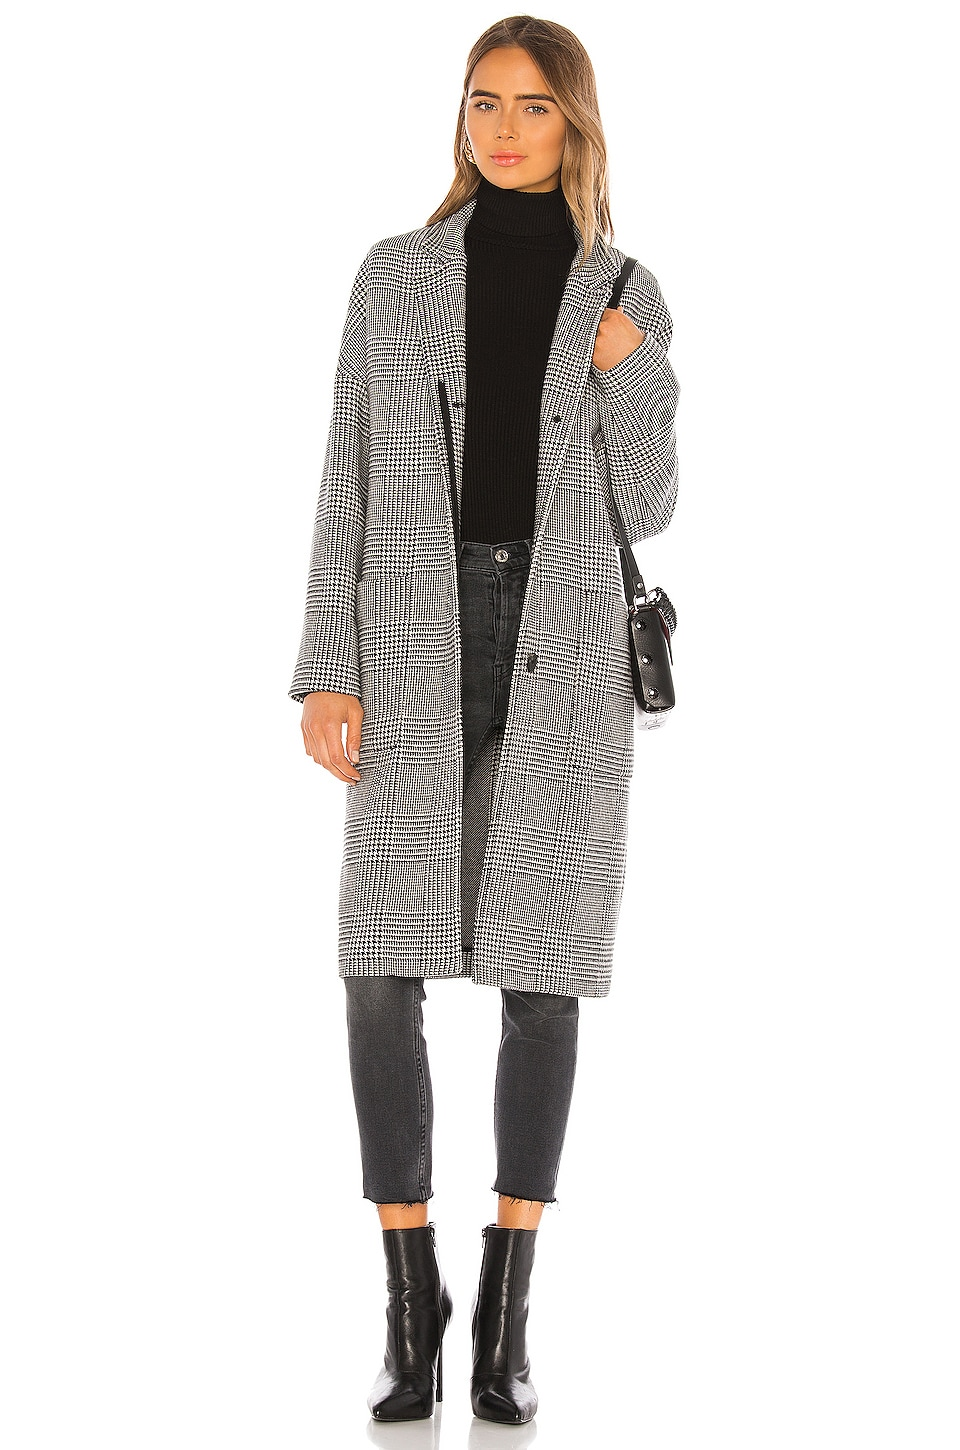 ALLSAINTS Teya Check Coat in Black & White